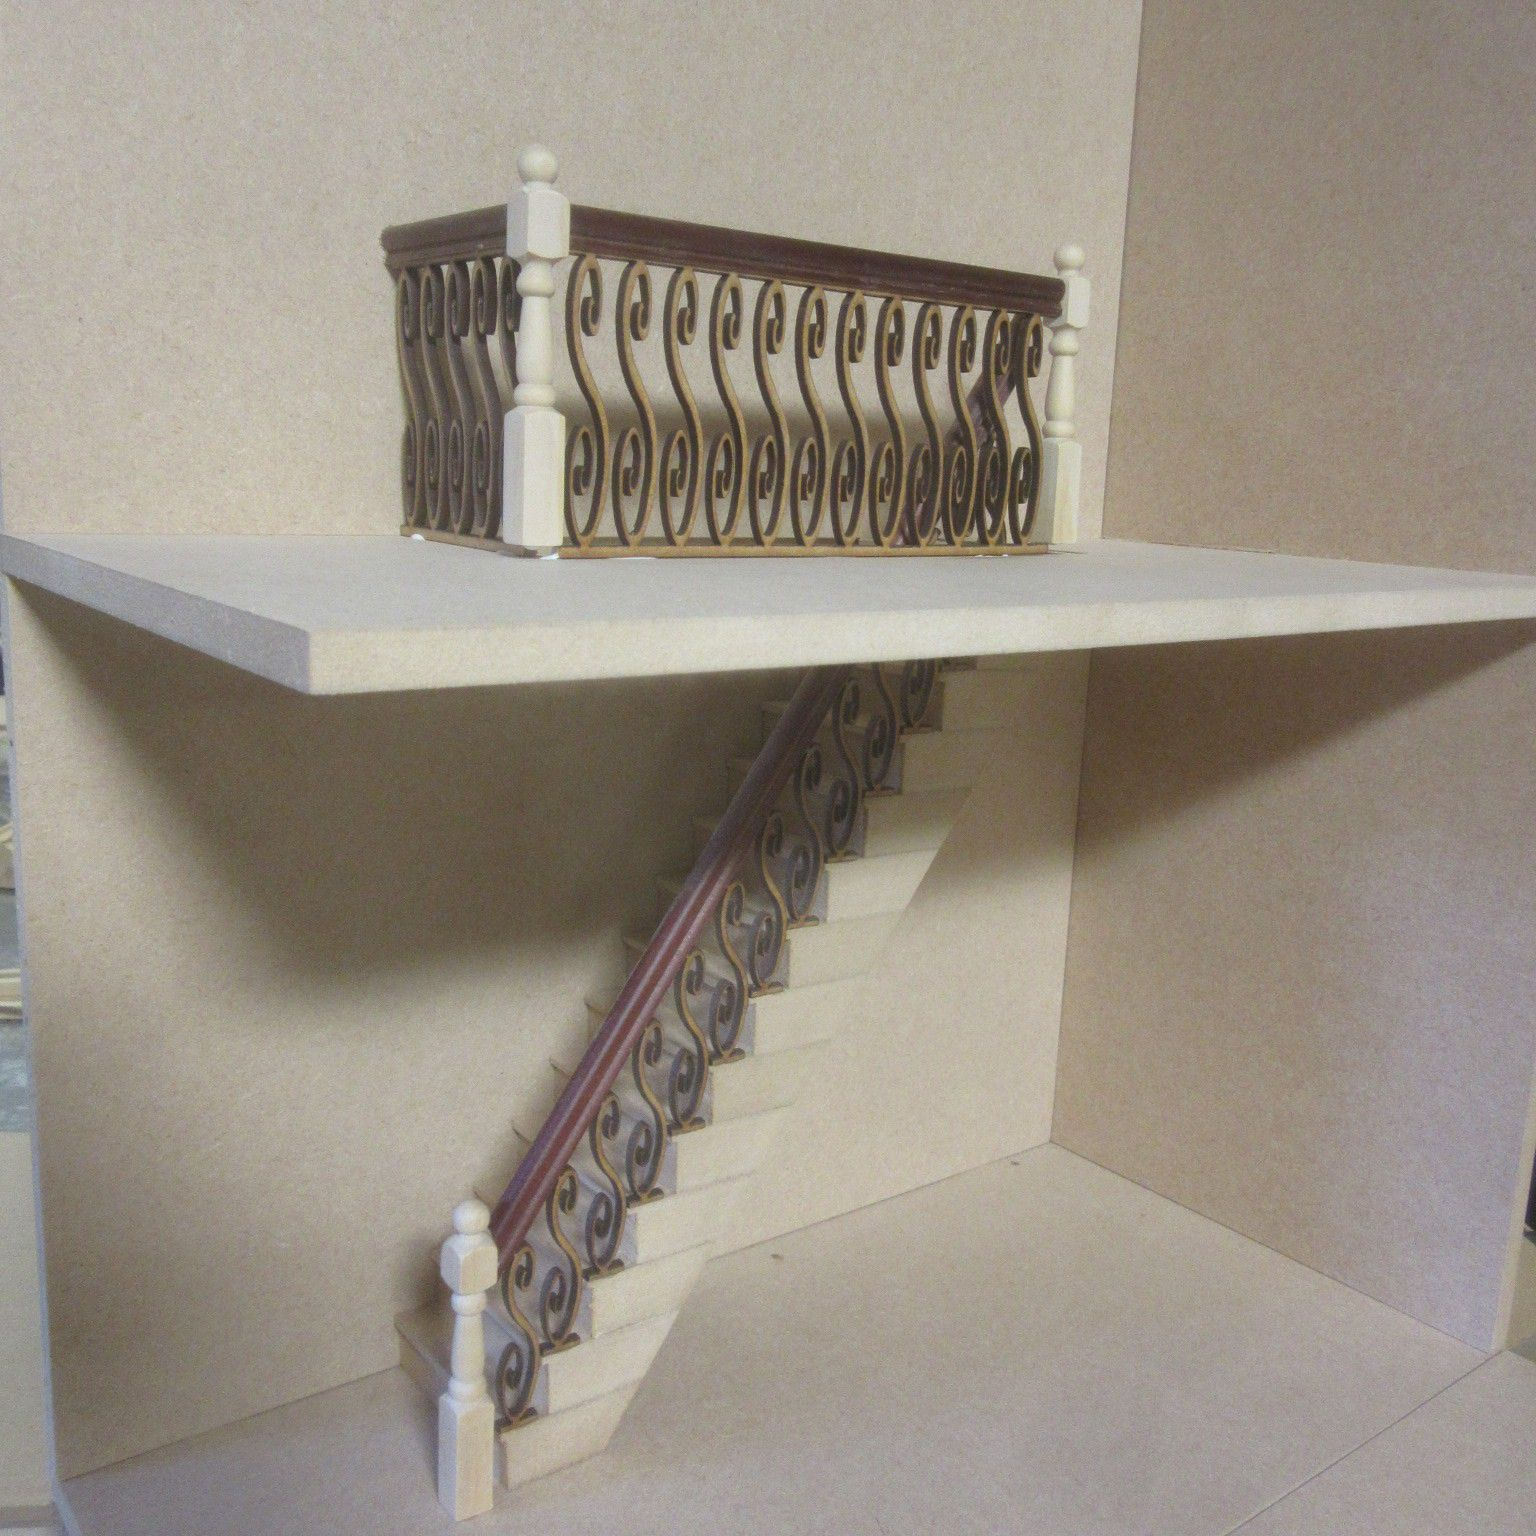 13 Stair Banister Railings. Banister Set Does Not Include The Stair Treads.  B Anisters